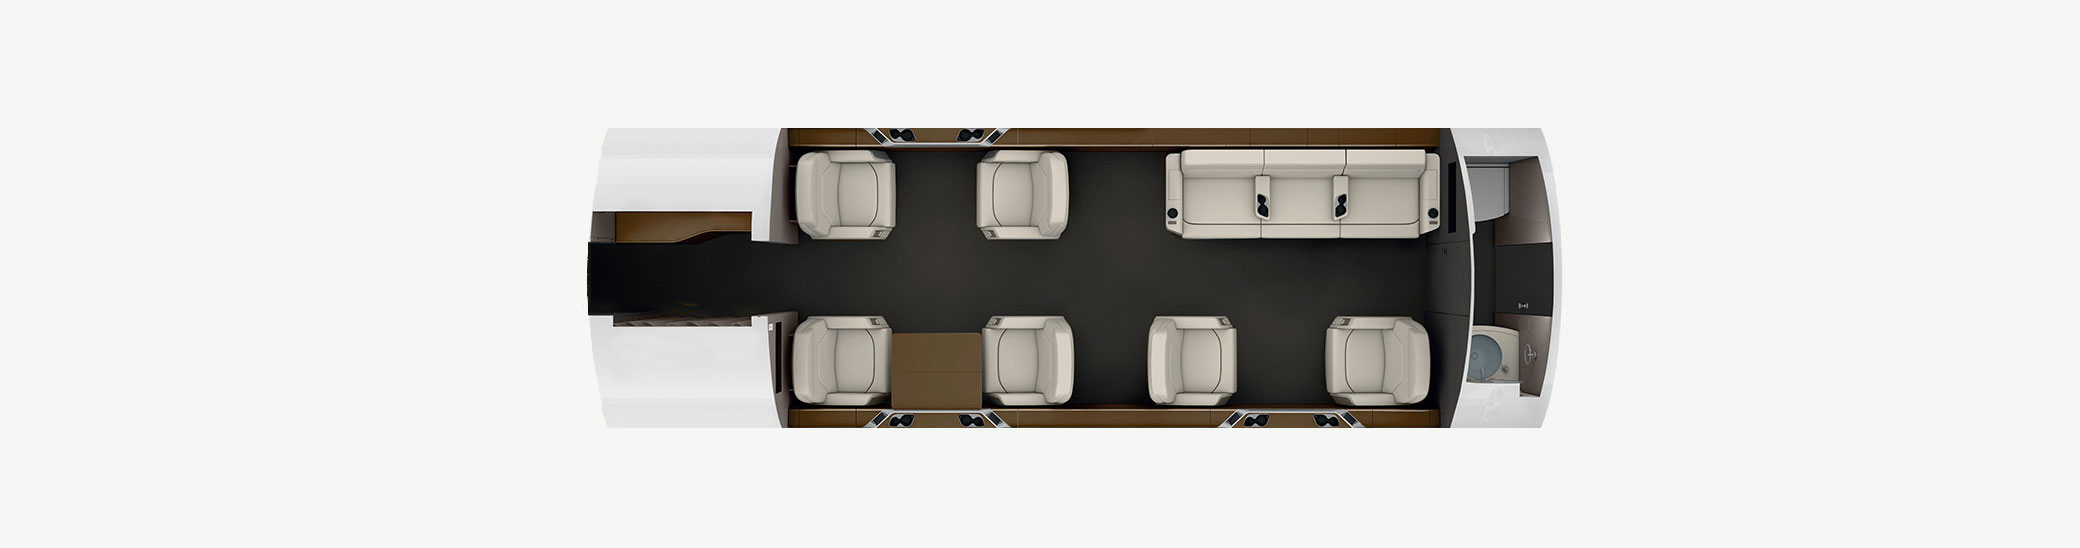 Challenger 650 floor plan